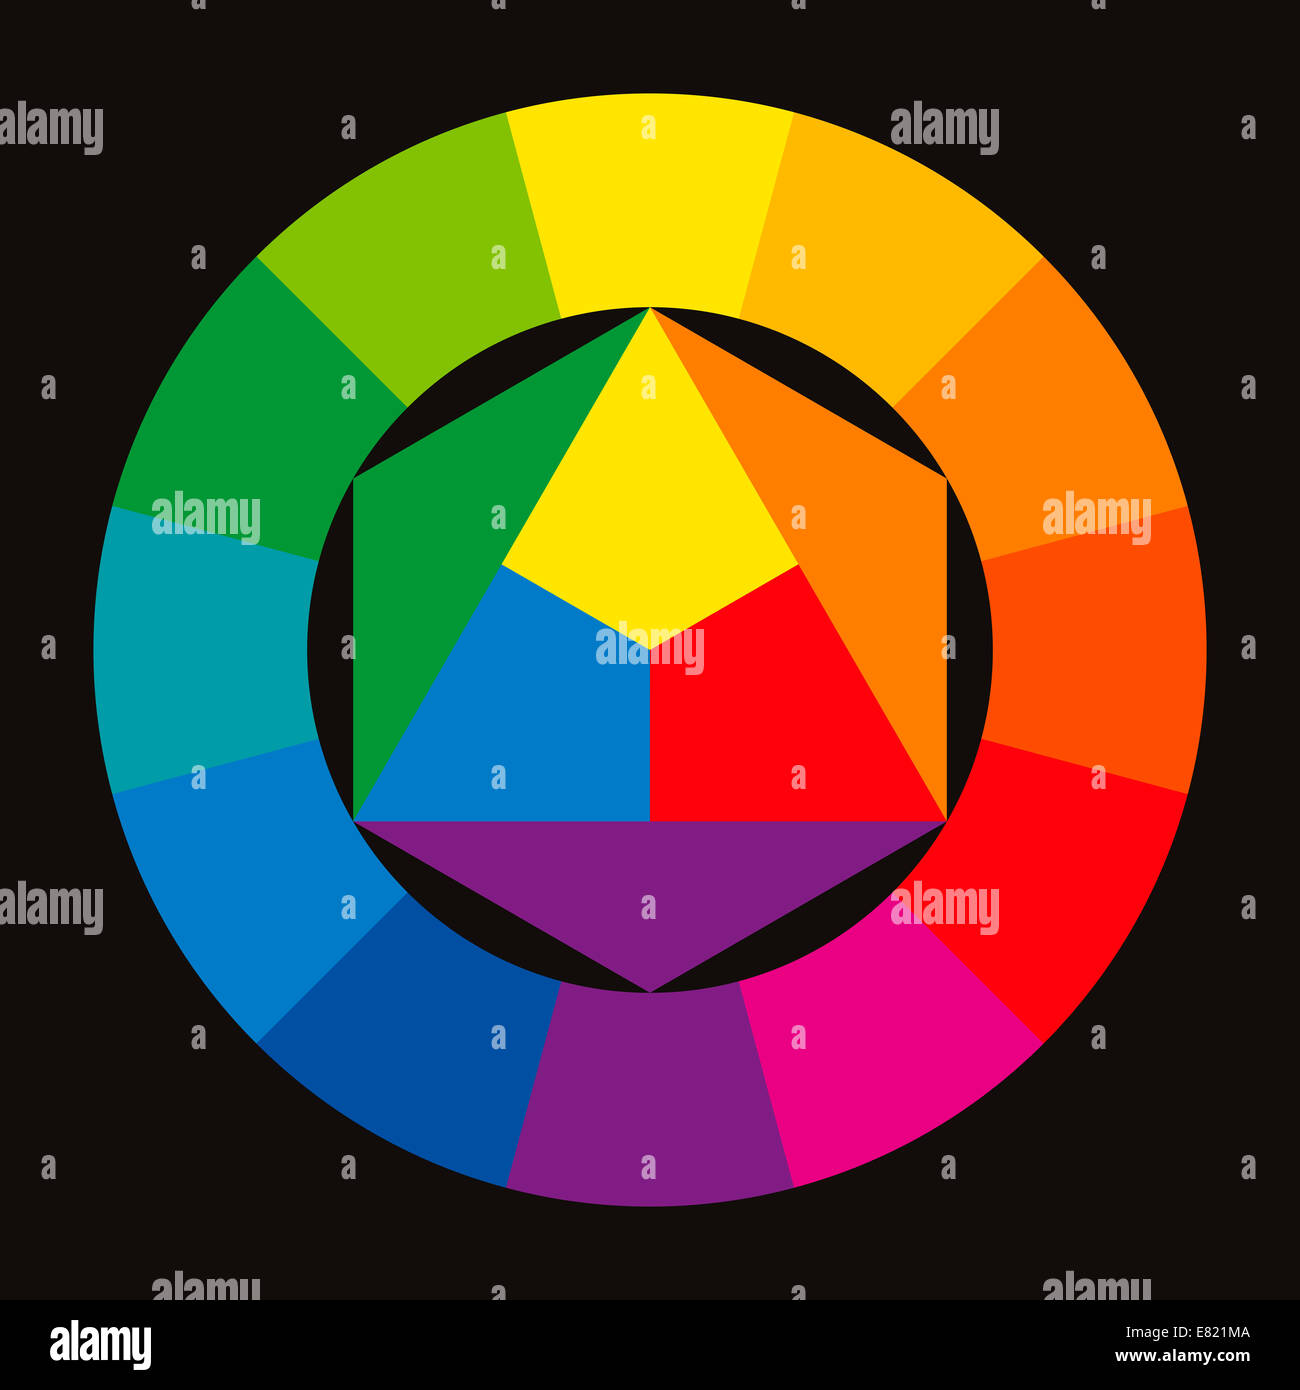 Color Wheel Showing Complementary Colors Primary In The Center And Resulting Mixed Circle